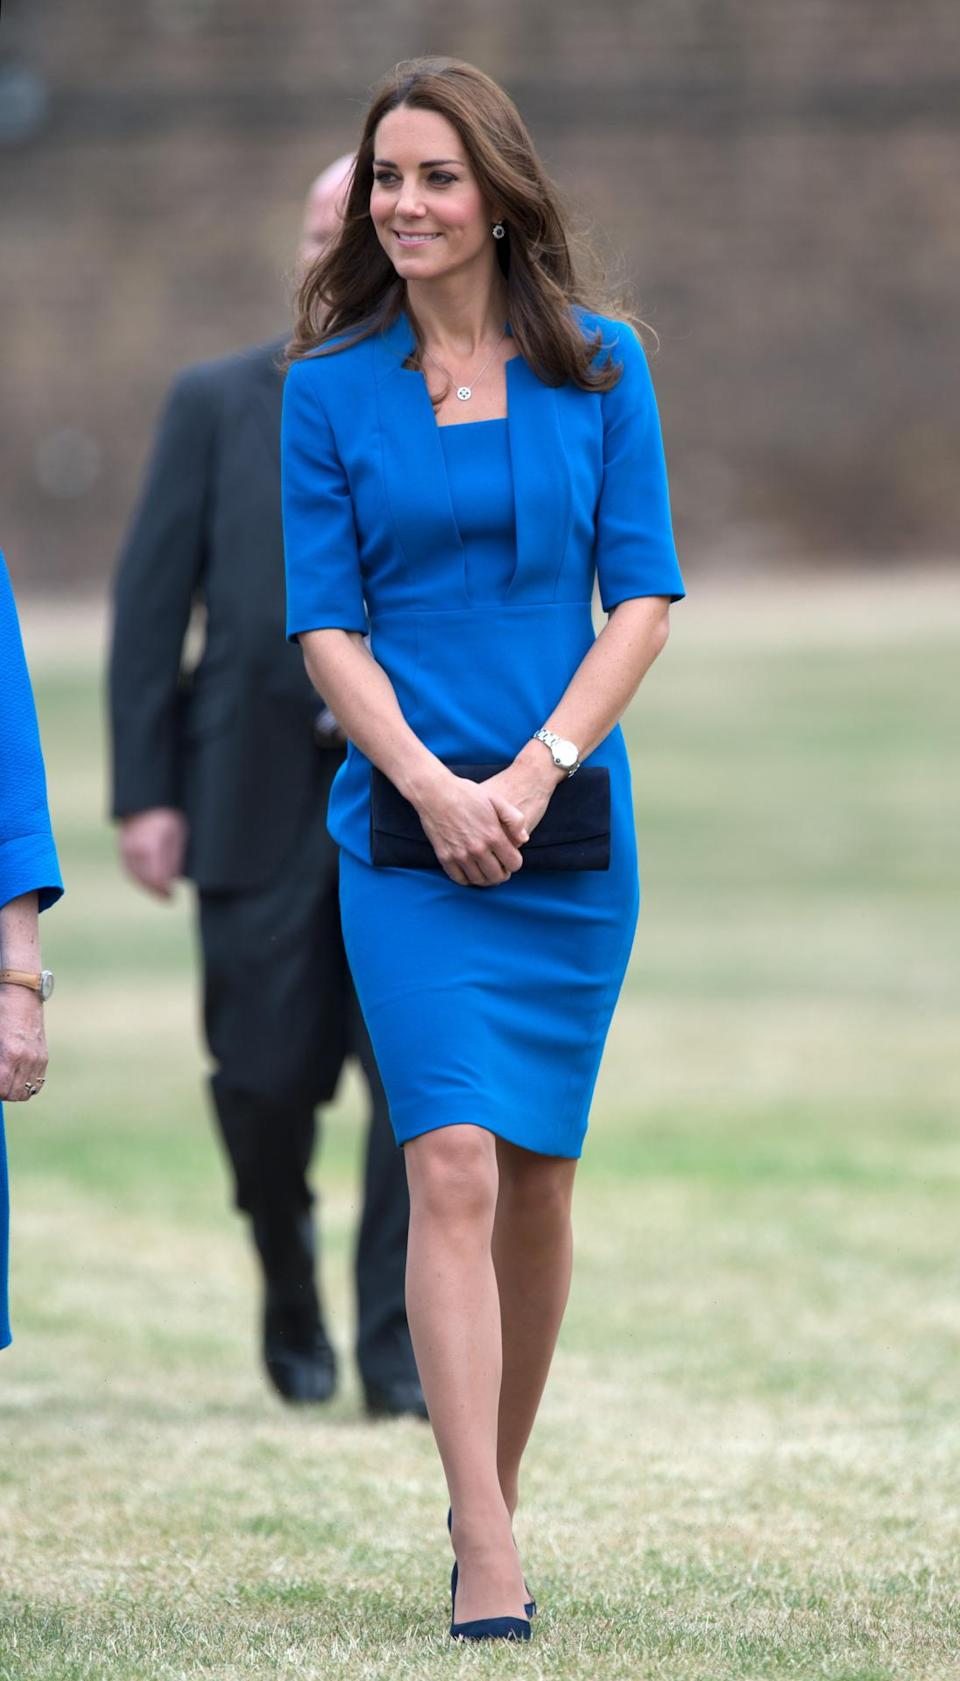 <p>Kate visited the Tower of London in a bright blue dress by L.K. Bennett and navy suede Jimmy Choos. The Duchess accessorised with a Stuart Weitzman clutch.</p><p><i>[Photo: PA]</i></p>